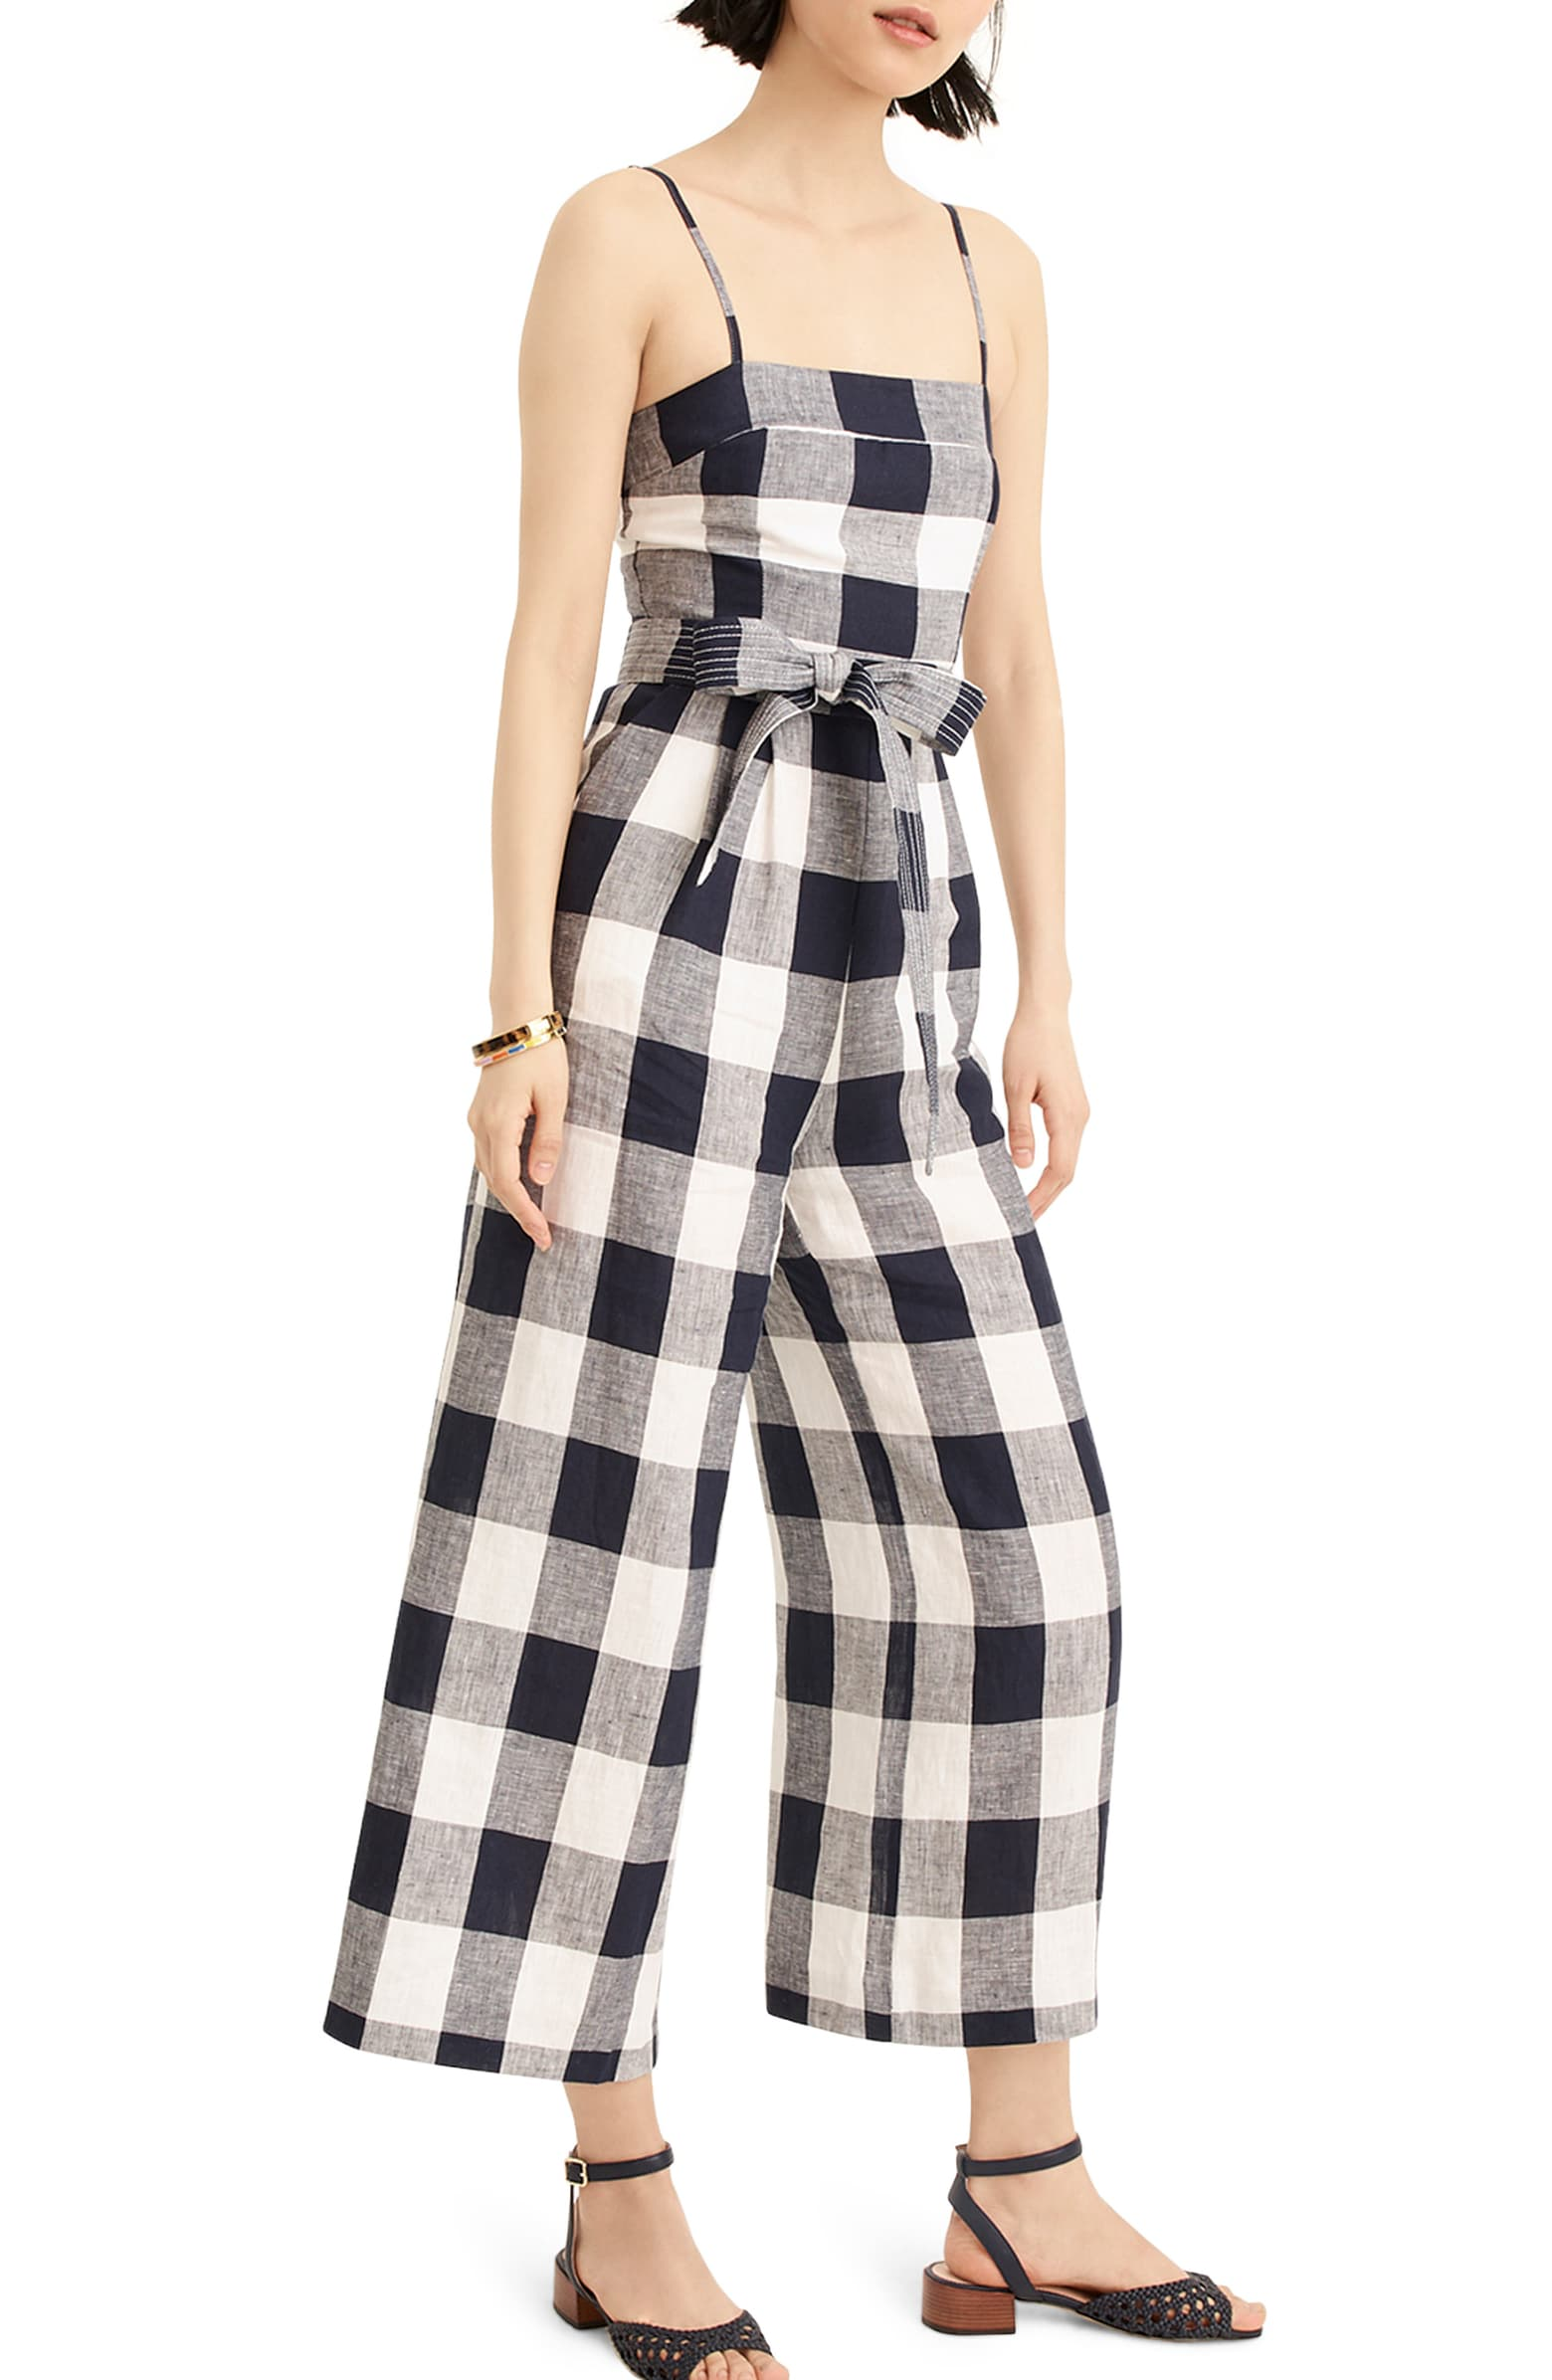 A gingham jumpsuit -